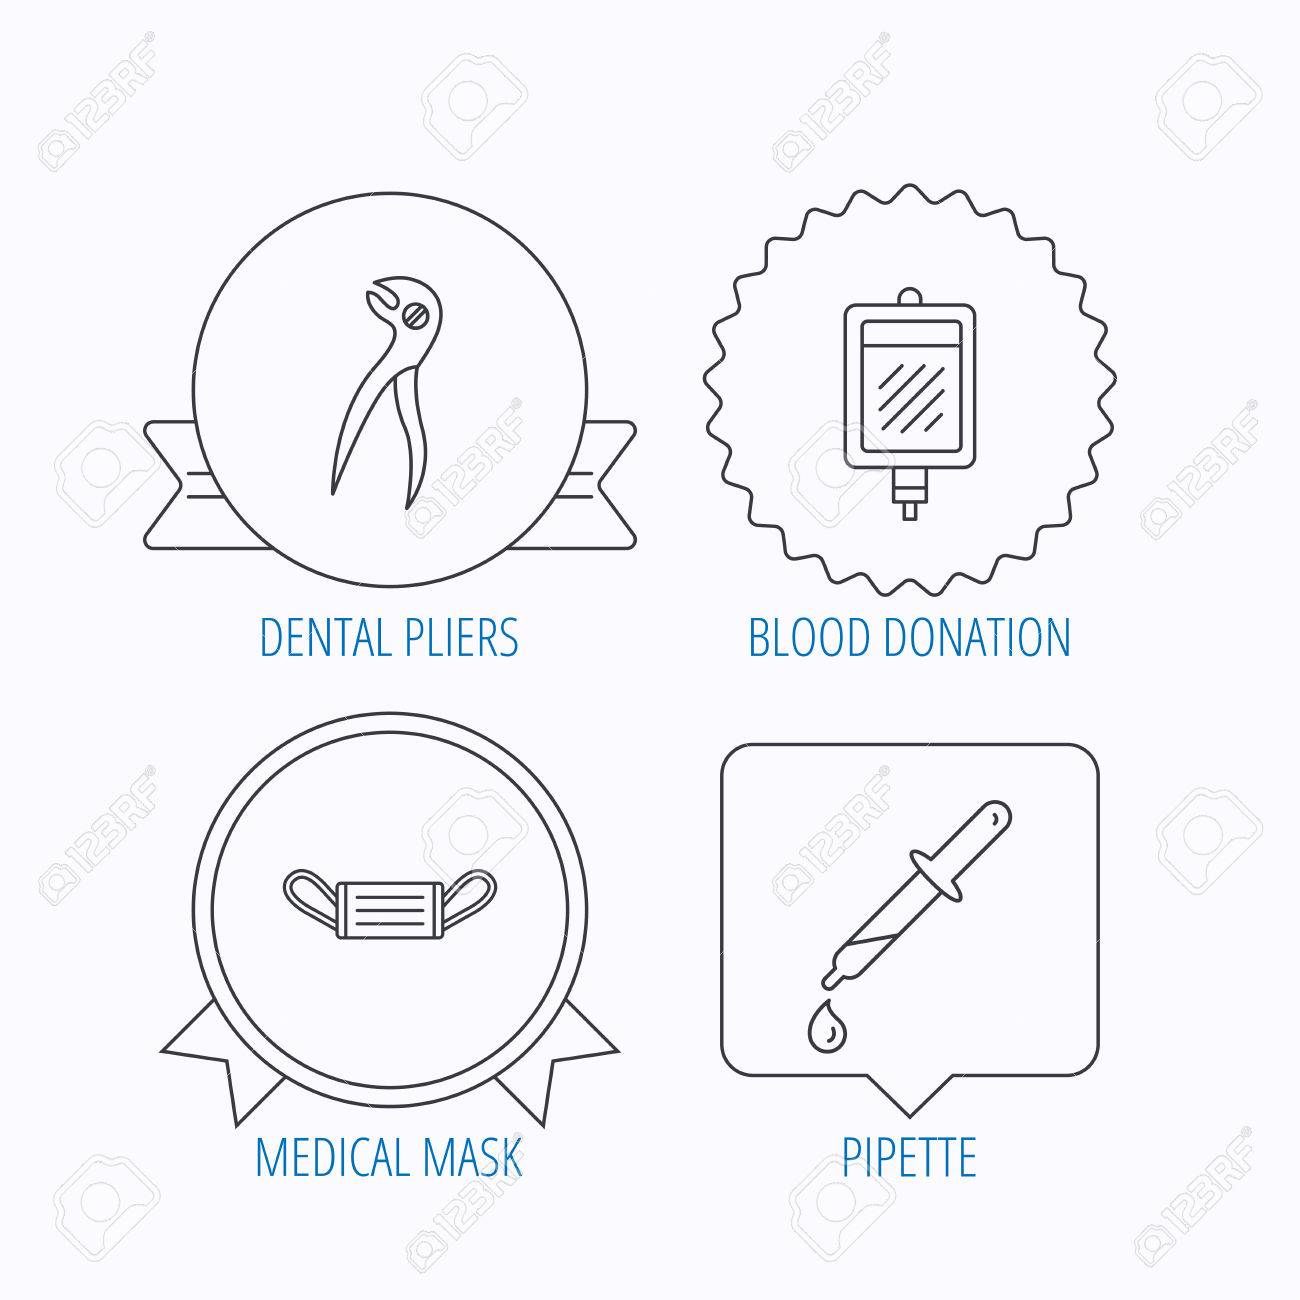 hight resolution of medical mask blood and dental pliers icons pipette linear sign award medal